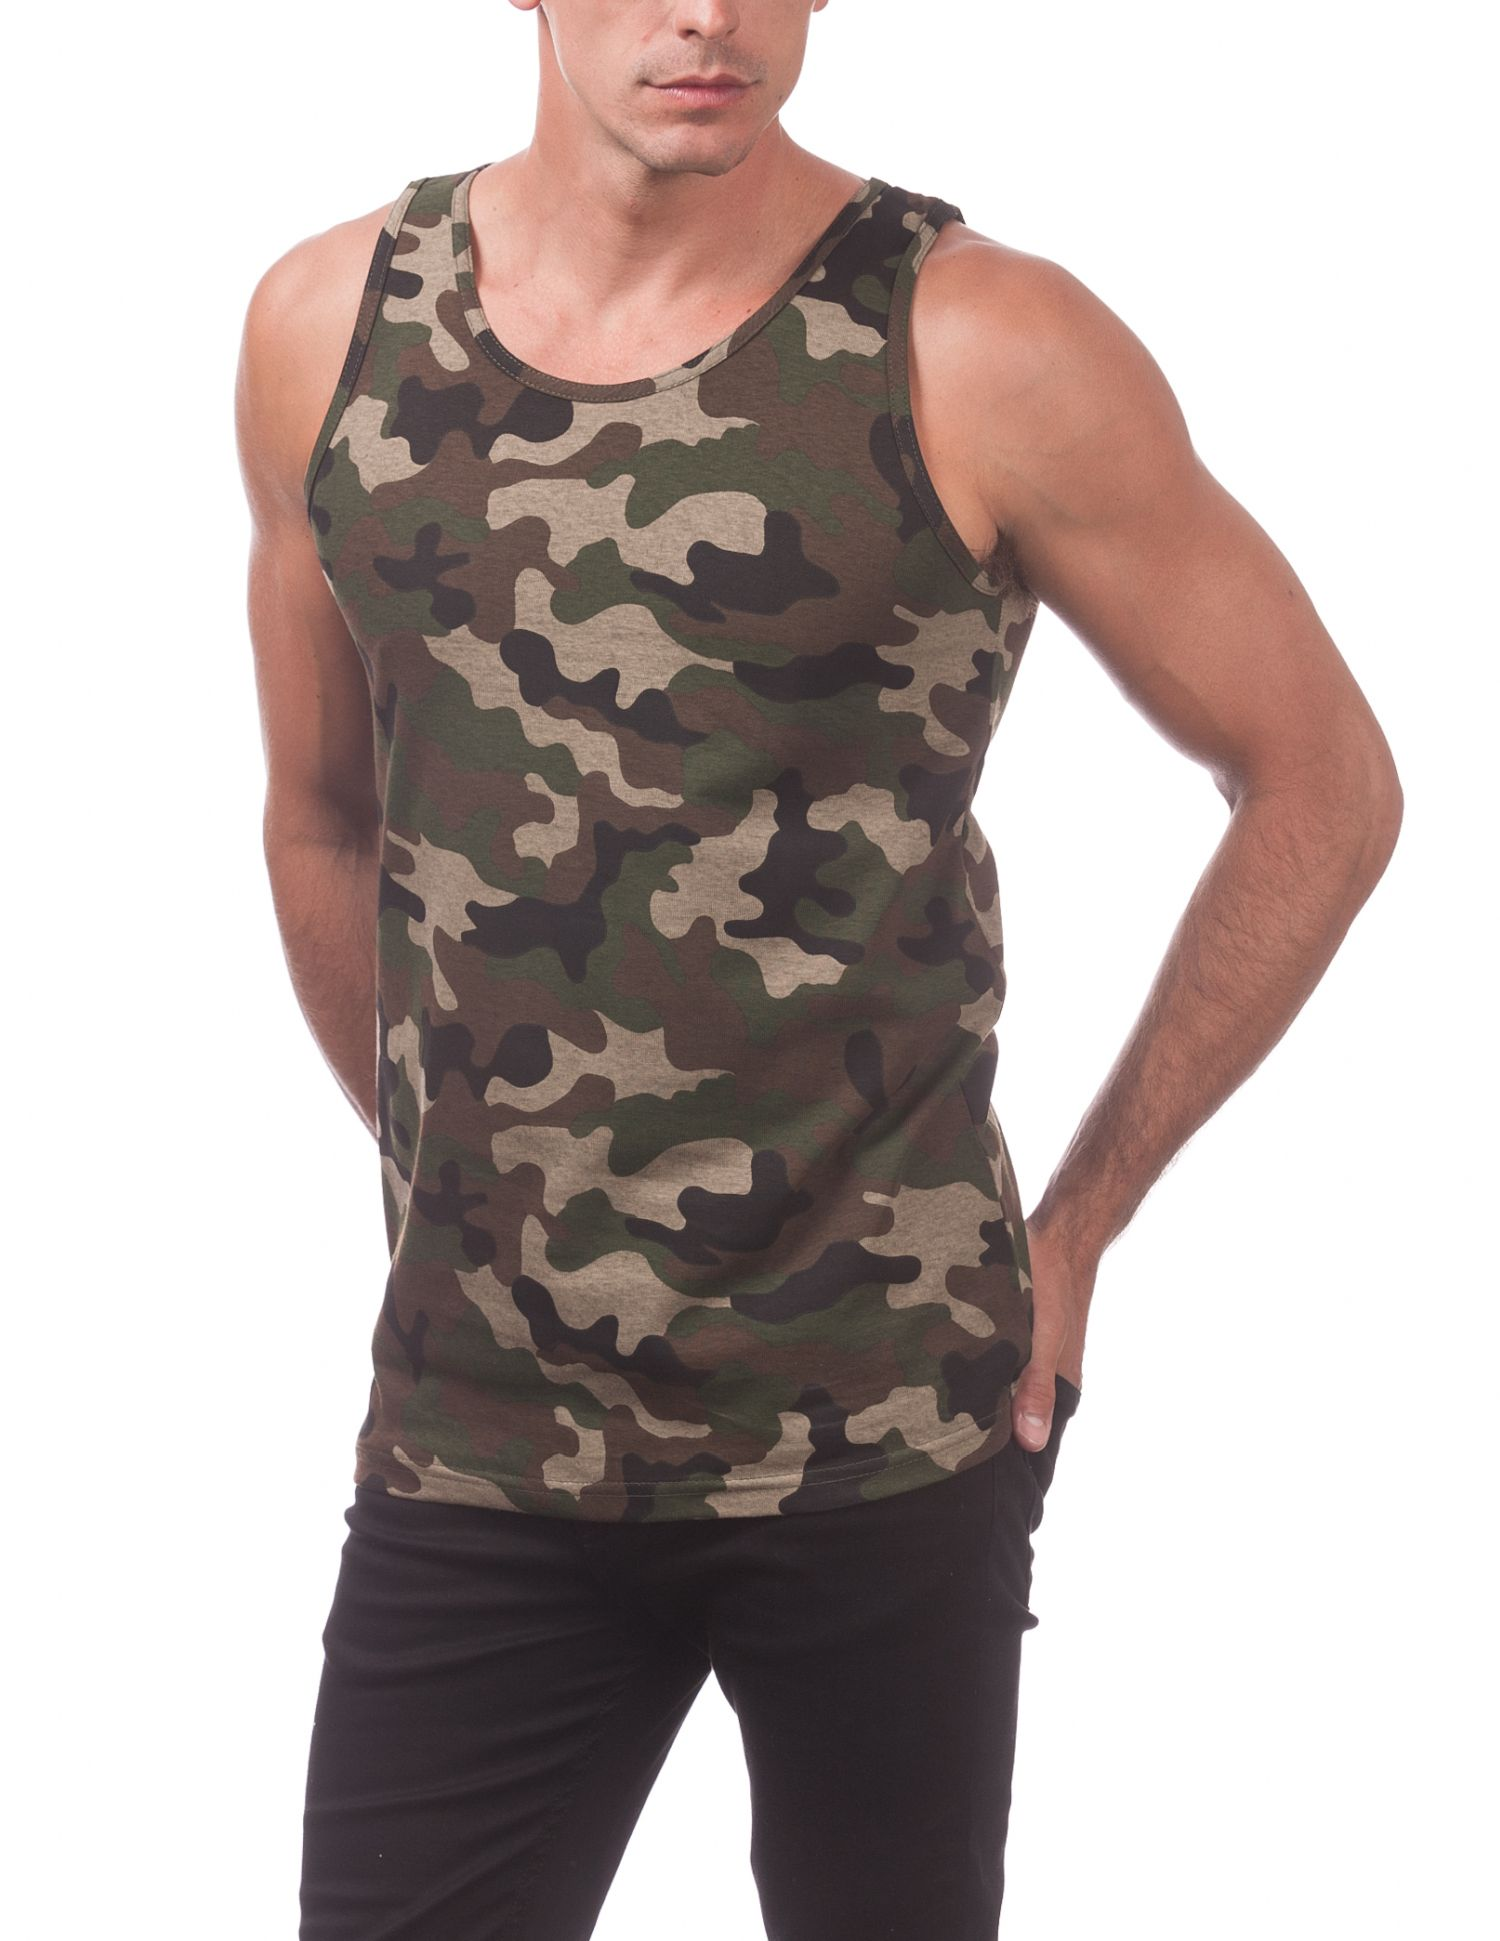 132 Best Images About Xdress On Pinterest: 132-CAMO GREEN CAMO Comfort Cotton Tank Top (Camo